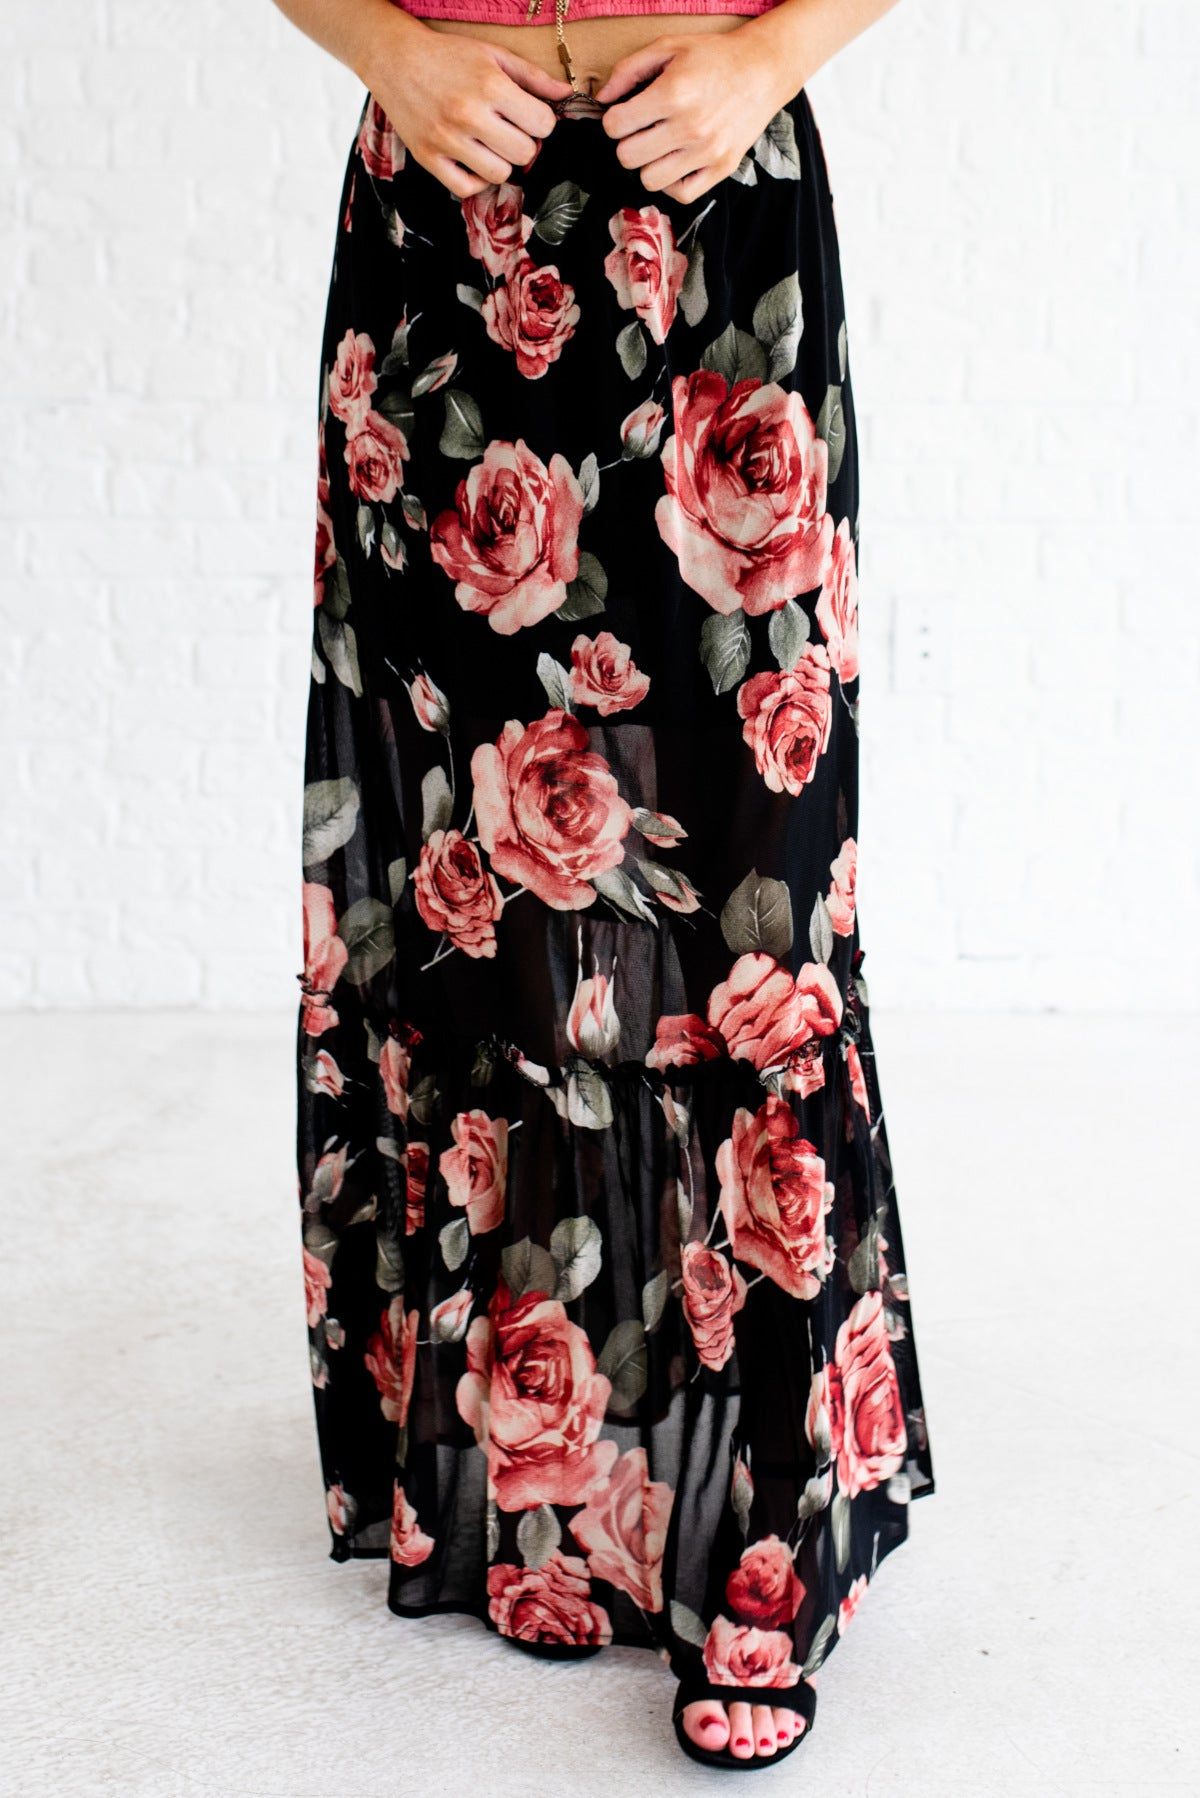 Black and Red Floral Rose Patterned Boutique Maxi Skirts for Women